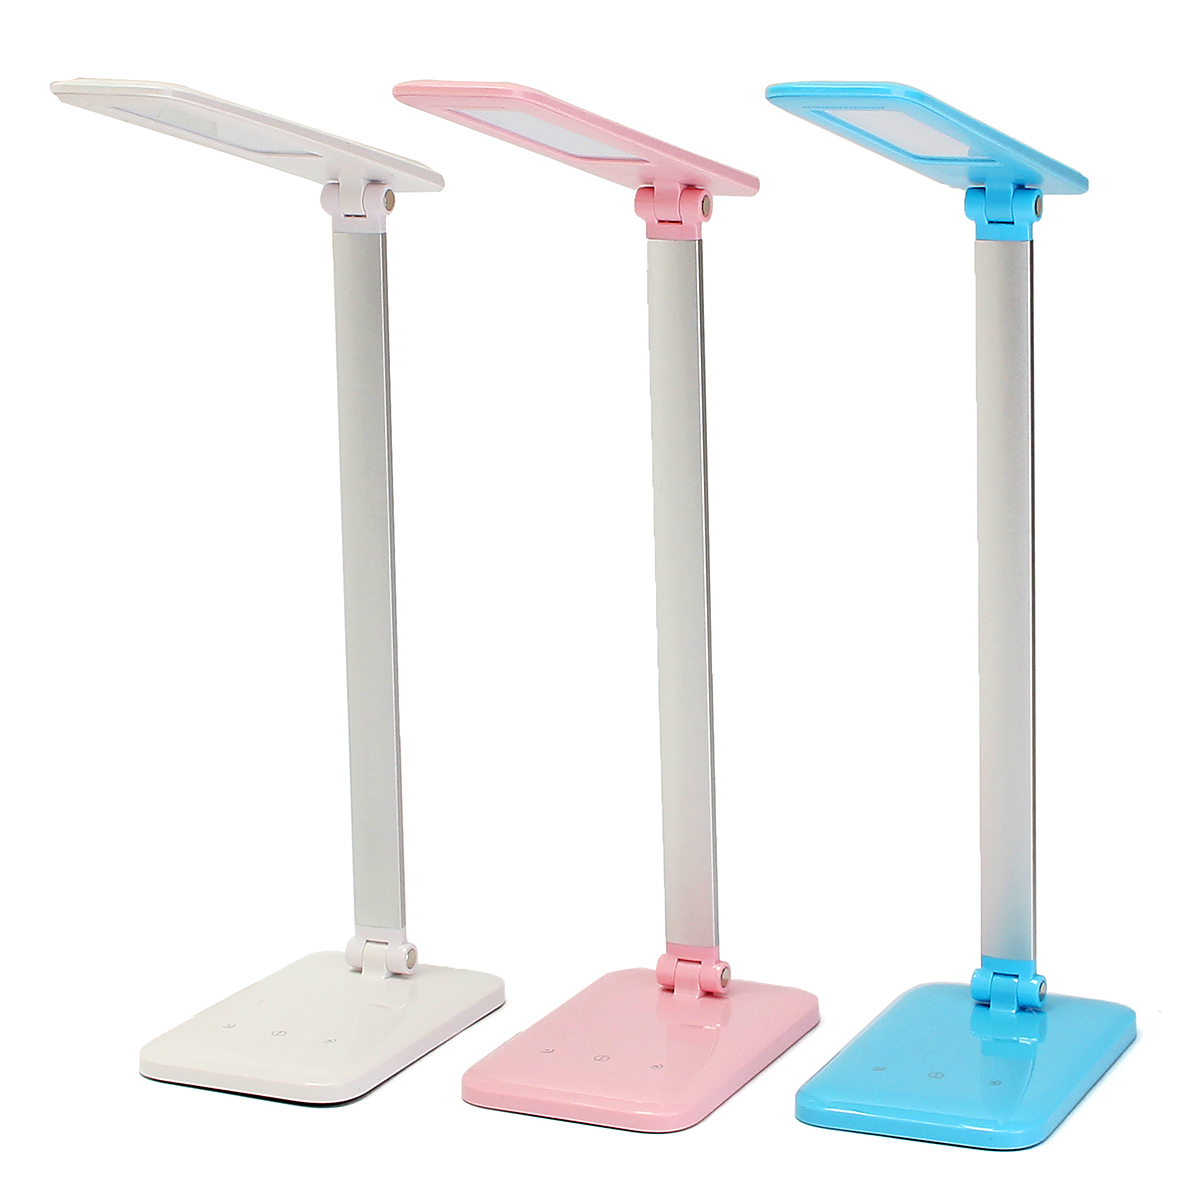 Foldable Adjustable 3 Level USB LED Table Light Smart Touch On Control Desk Lamp Study Reading Book Eye Protect Lights Lamp led table lamp reading lamp led study lamp table lamp eye protection office study desk light modern book lights wall lights